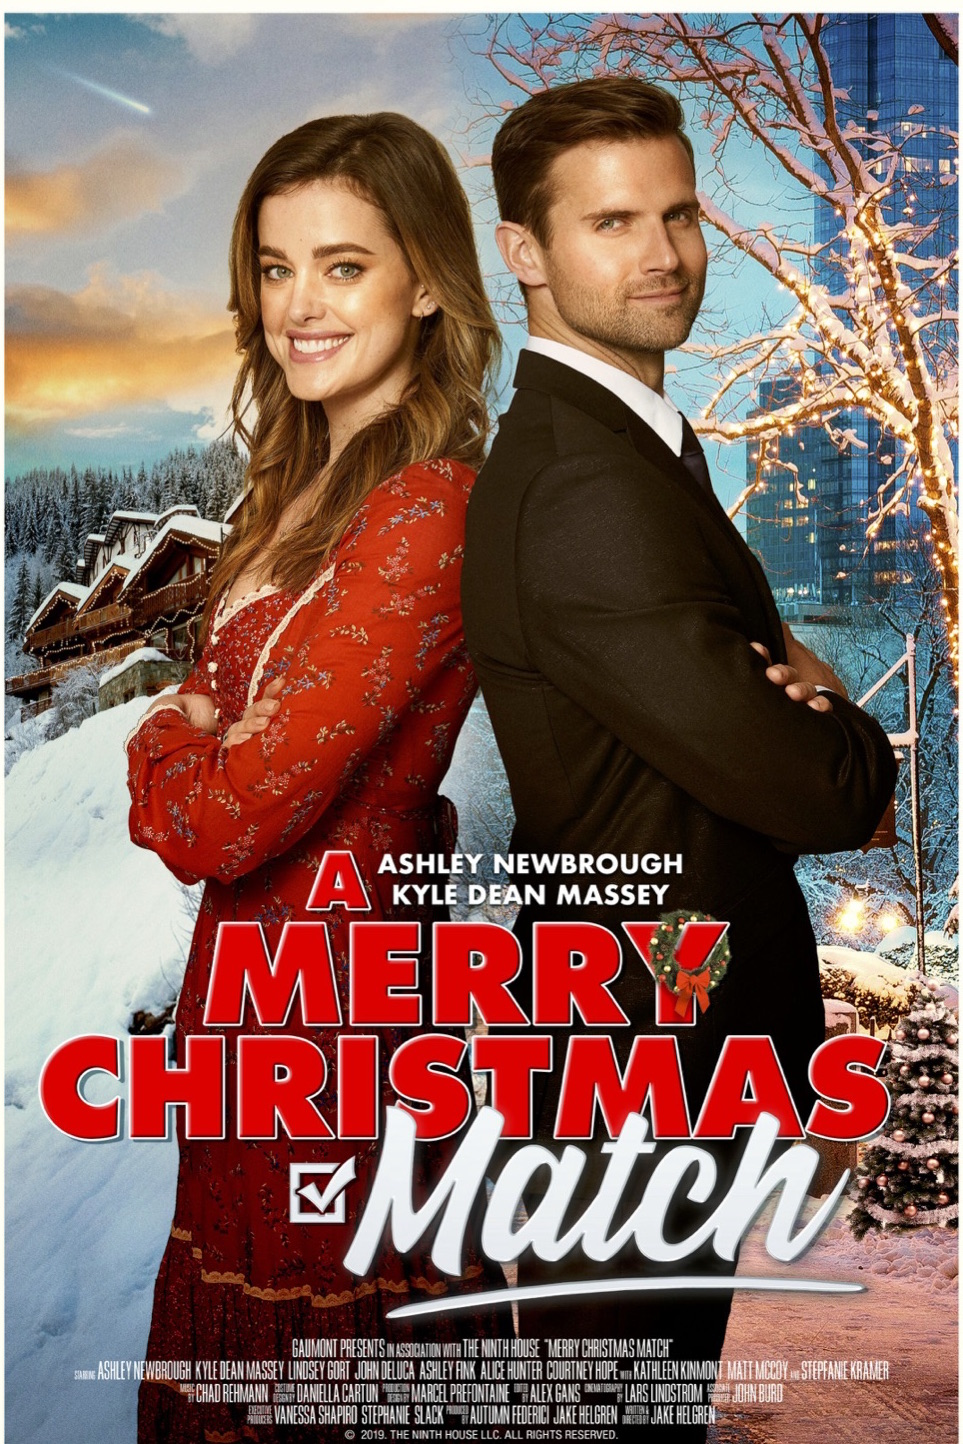 A Merry Christmas Match (2019) Full Movie [In English] With Hindi Subtitles | HDTV 720p [1XBET]